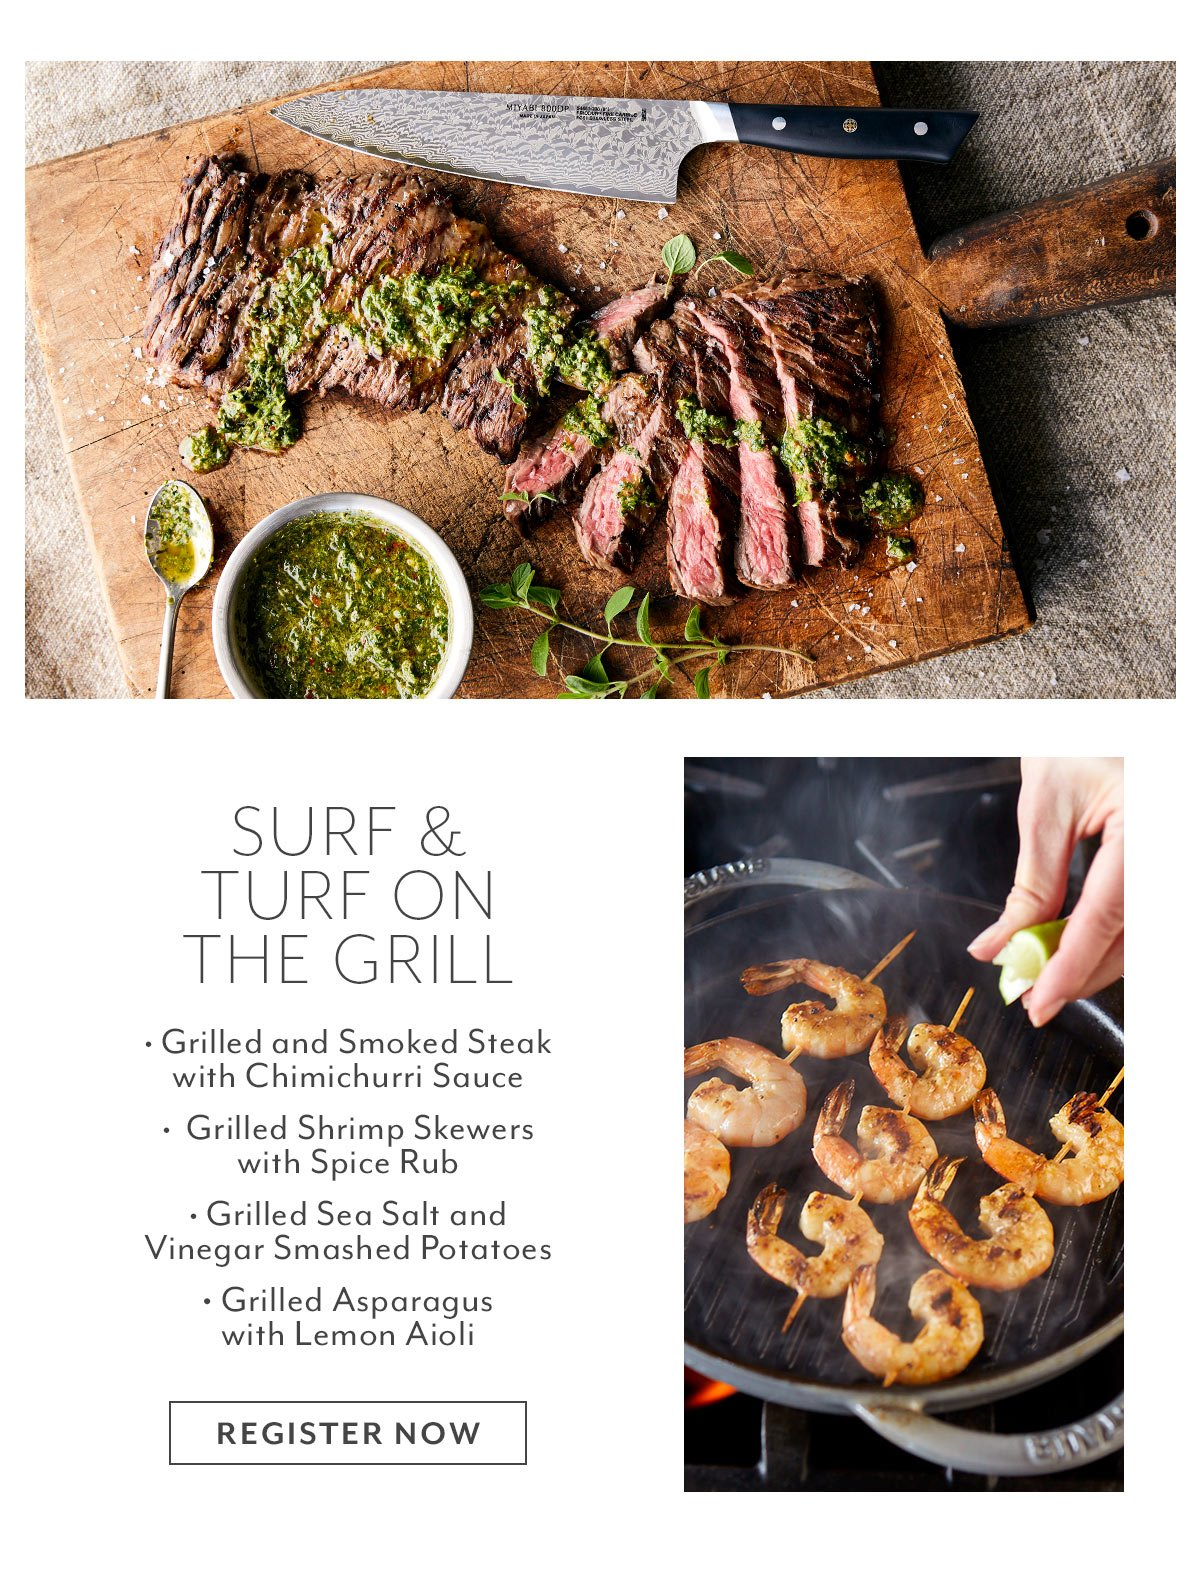 Class: Surf & Turf on the Grill